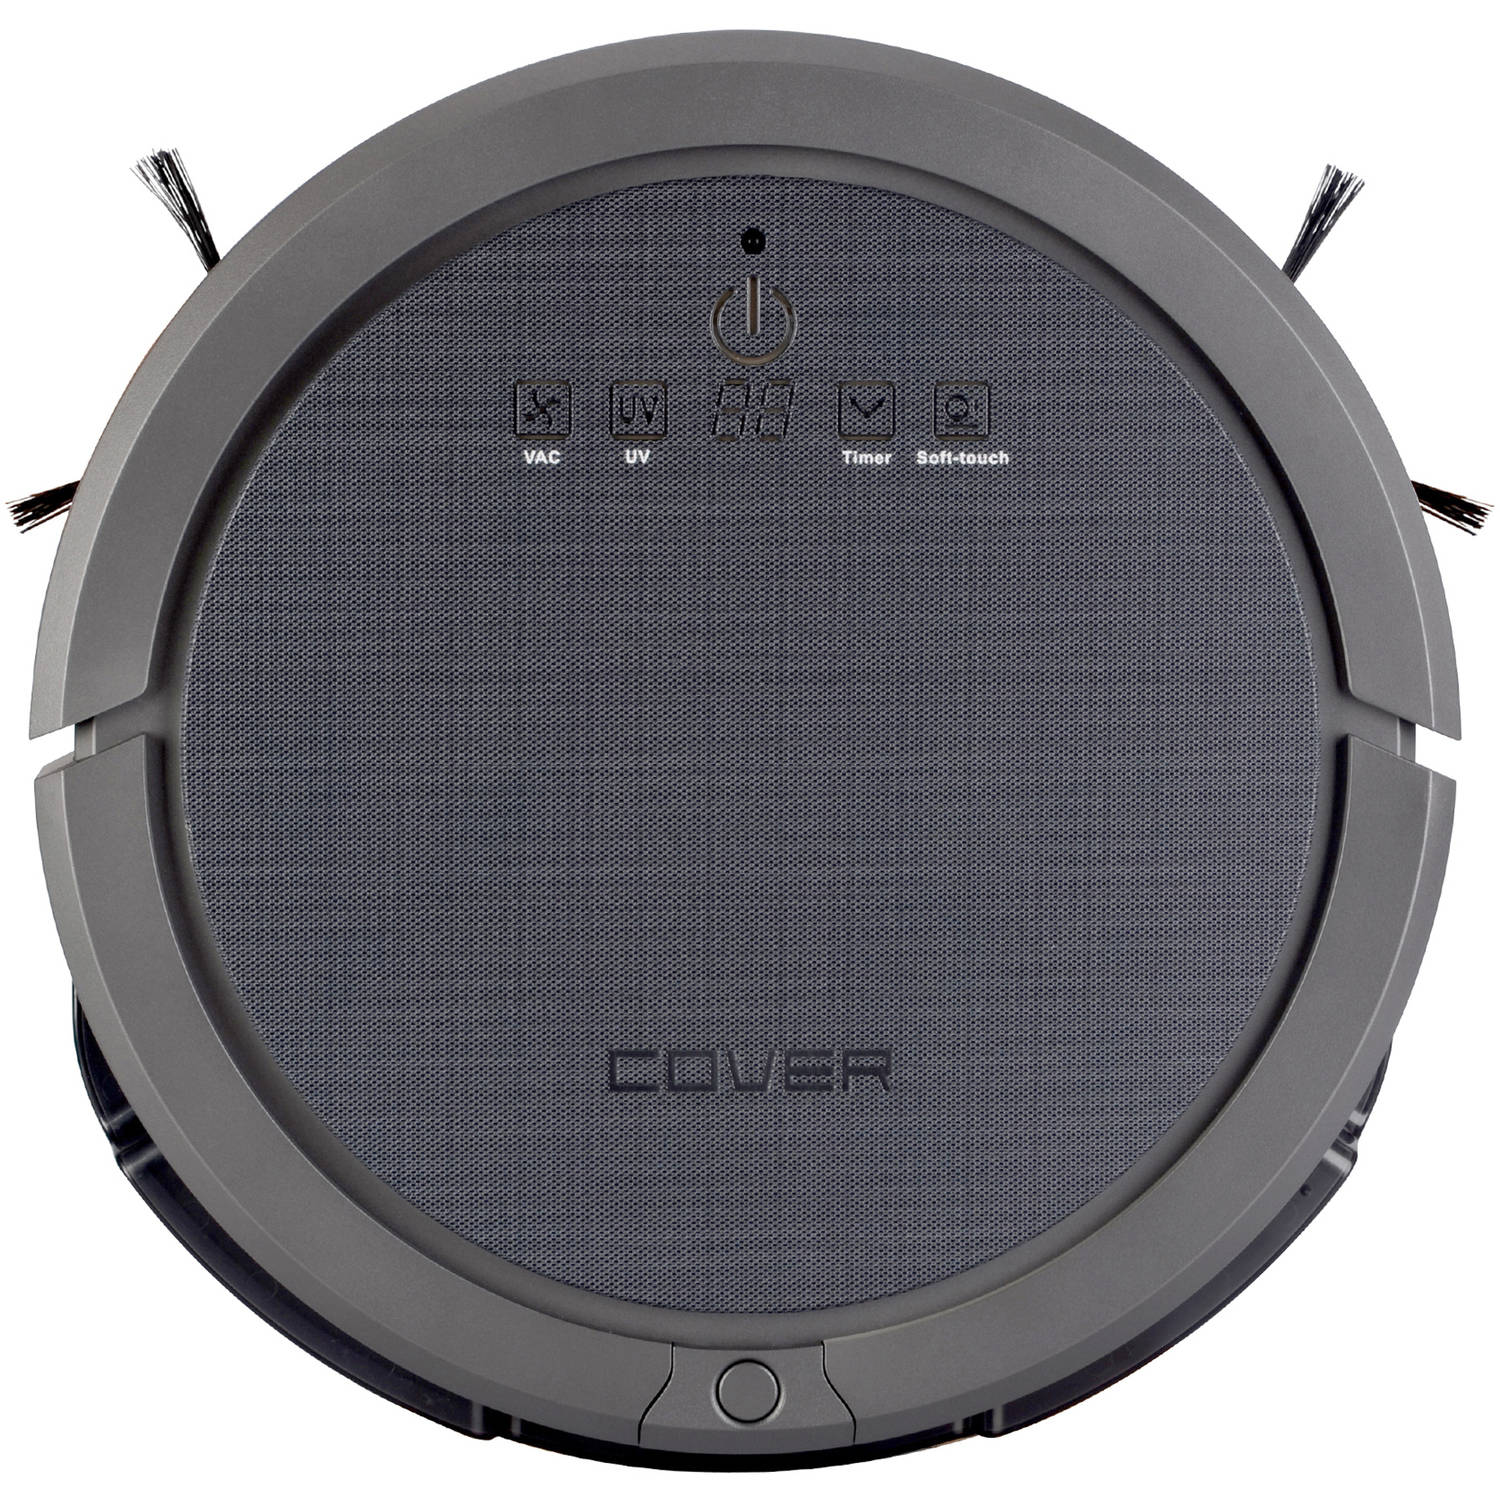 COVER All Surface Robotic Vacuum Cleaner with Air Purification System for Carpets and Floors